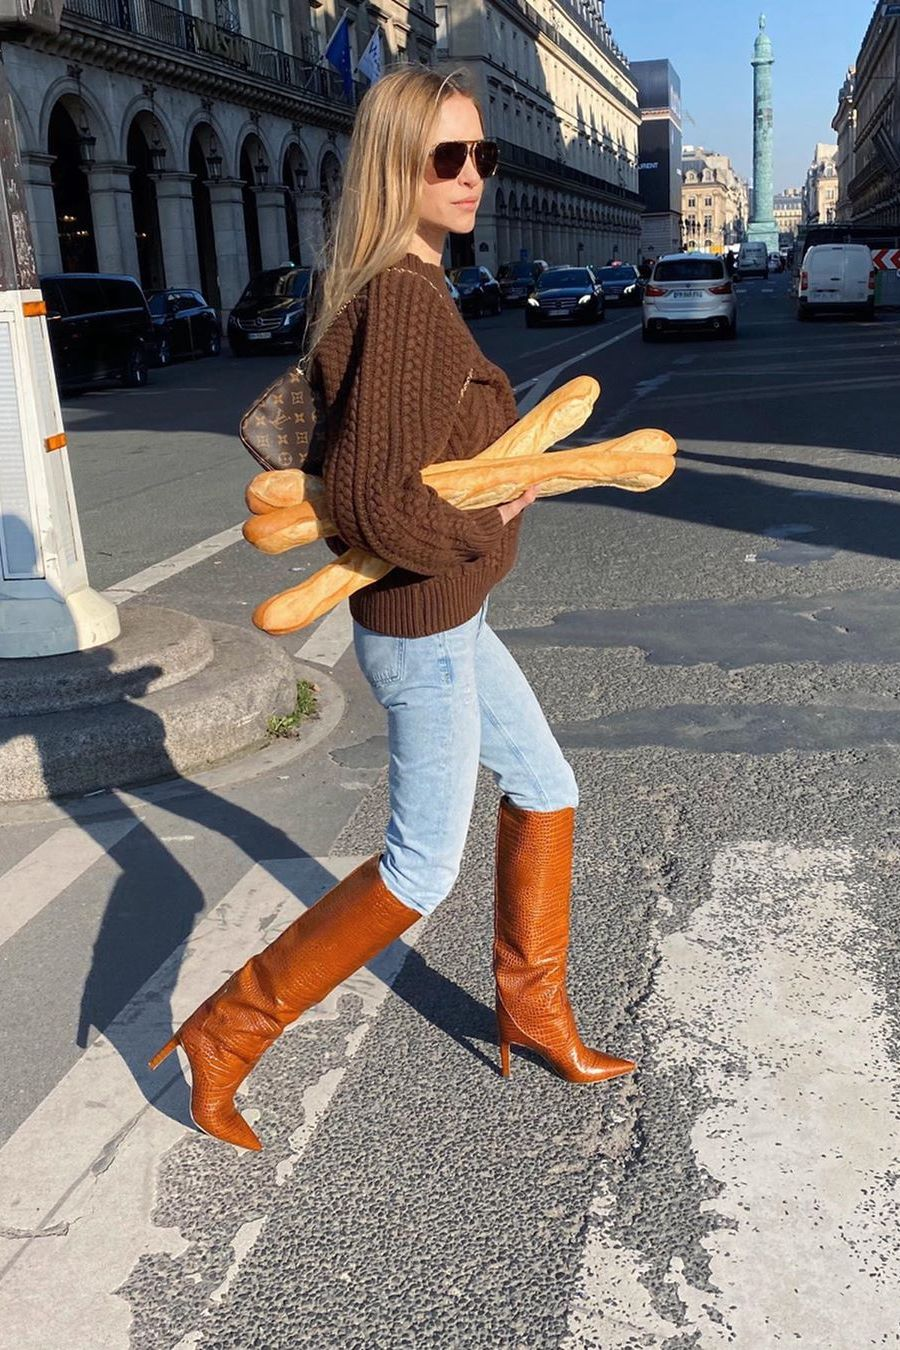 pernille teisbaek wearing jeans and brown cable-knit sweater